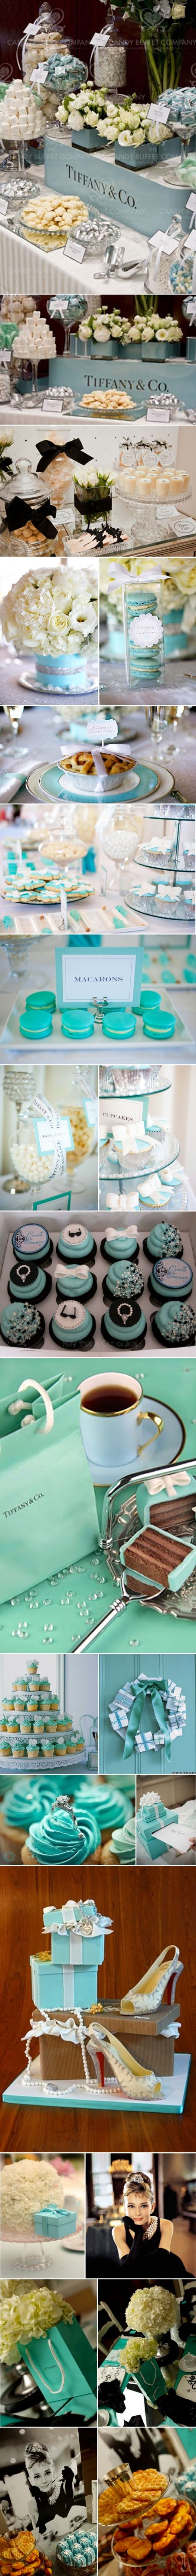 Breakfast at Tiffany's Tea Party! How cute